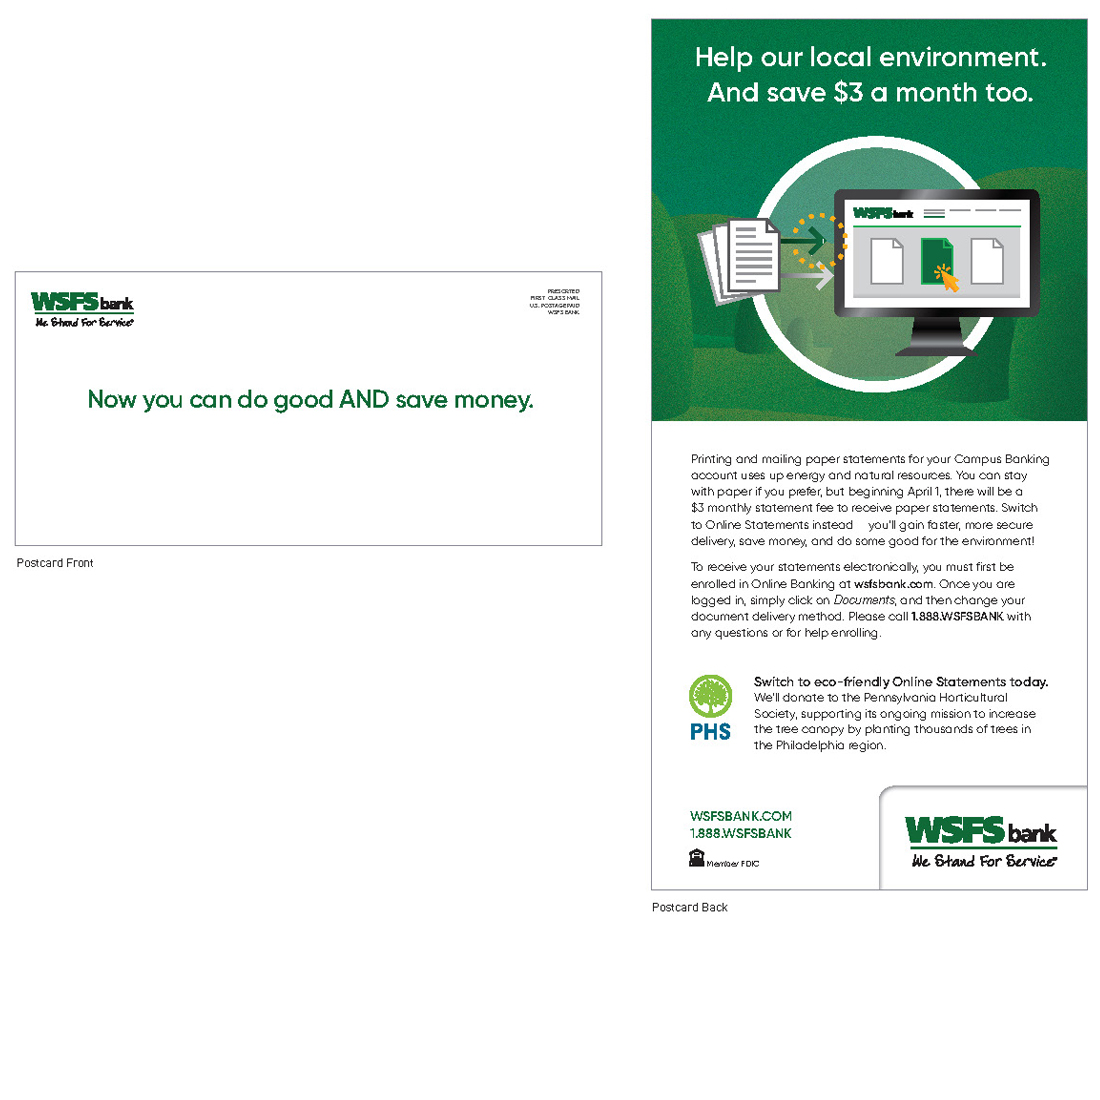 WSFS Post Conversion Friction Mitigation (Campus Banking) sample